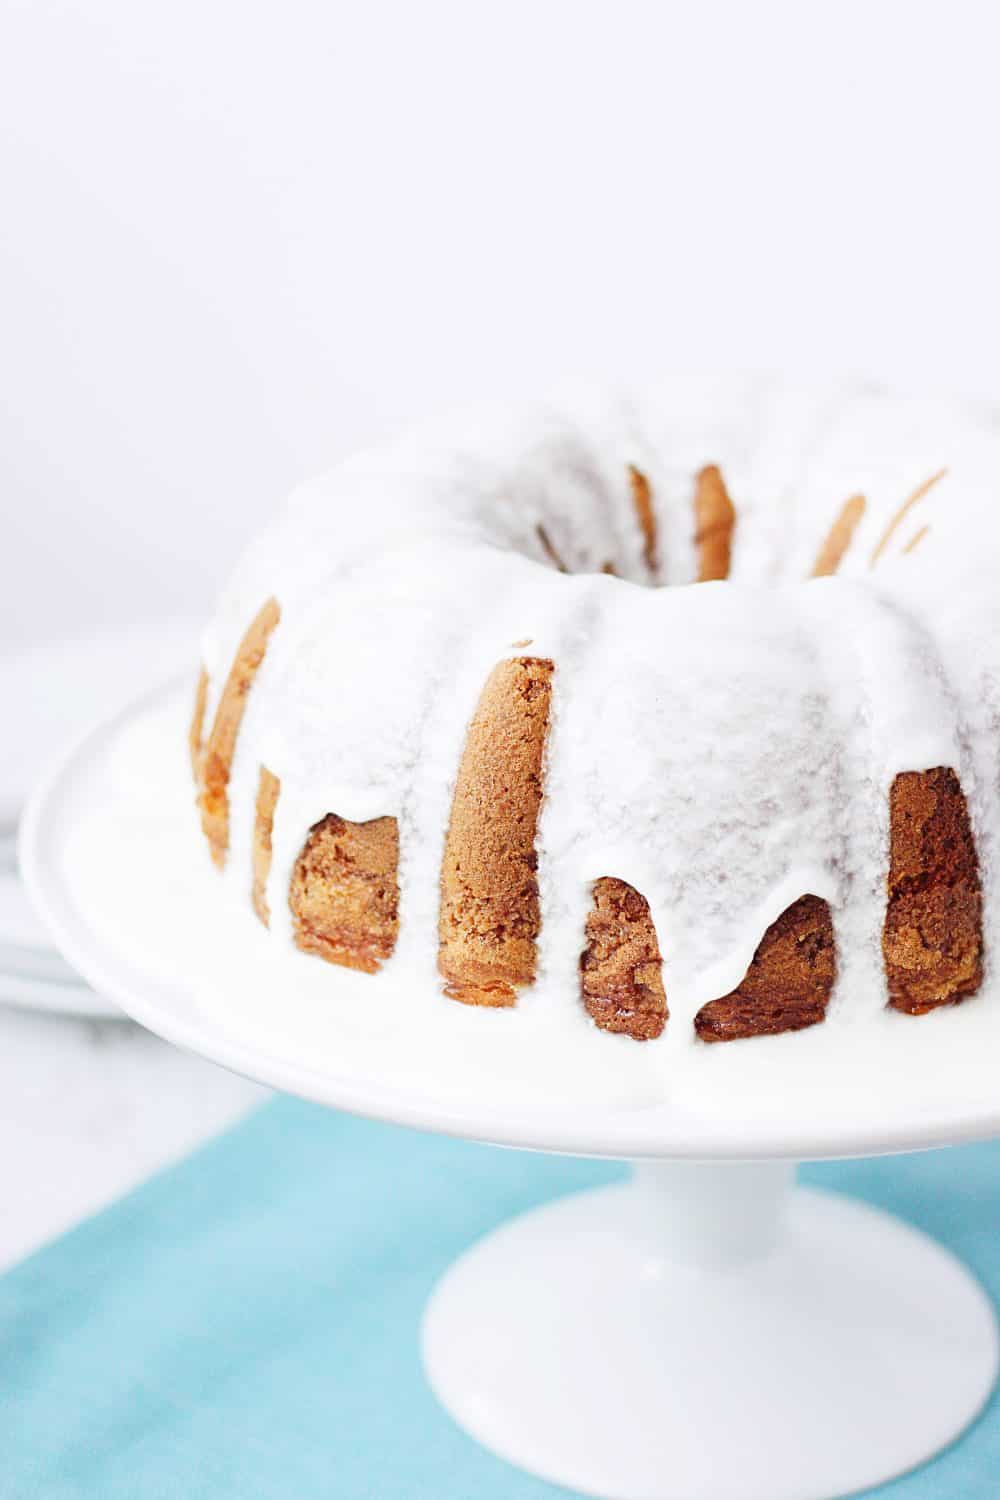 Cake mix coffee cake bundt cake with vanilla glaze